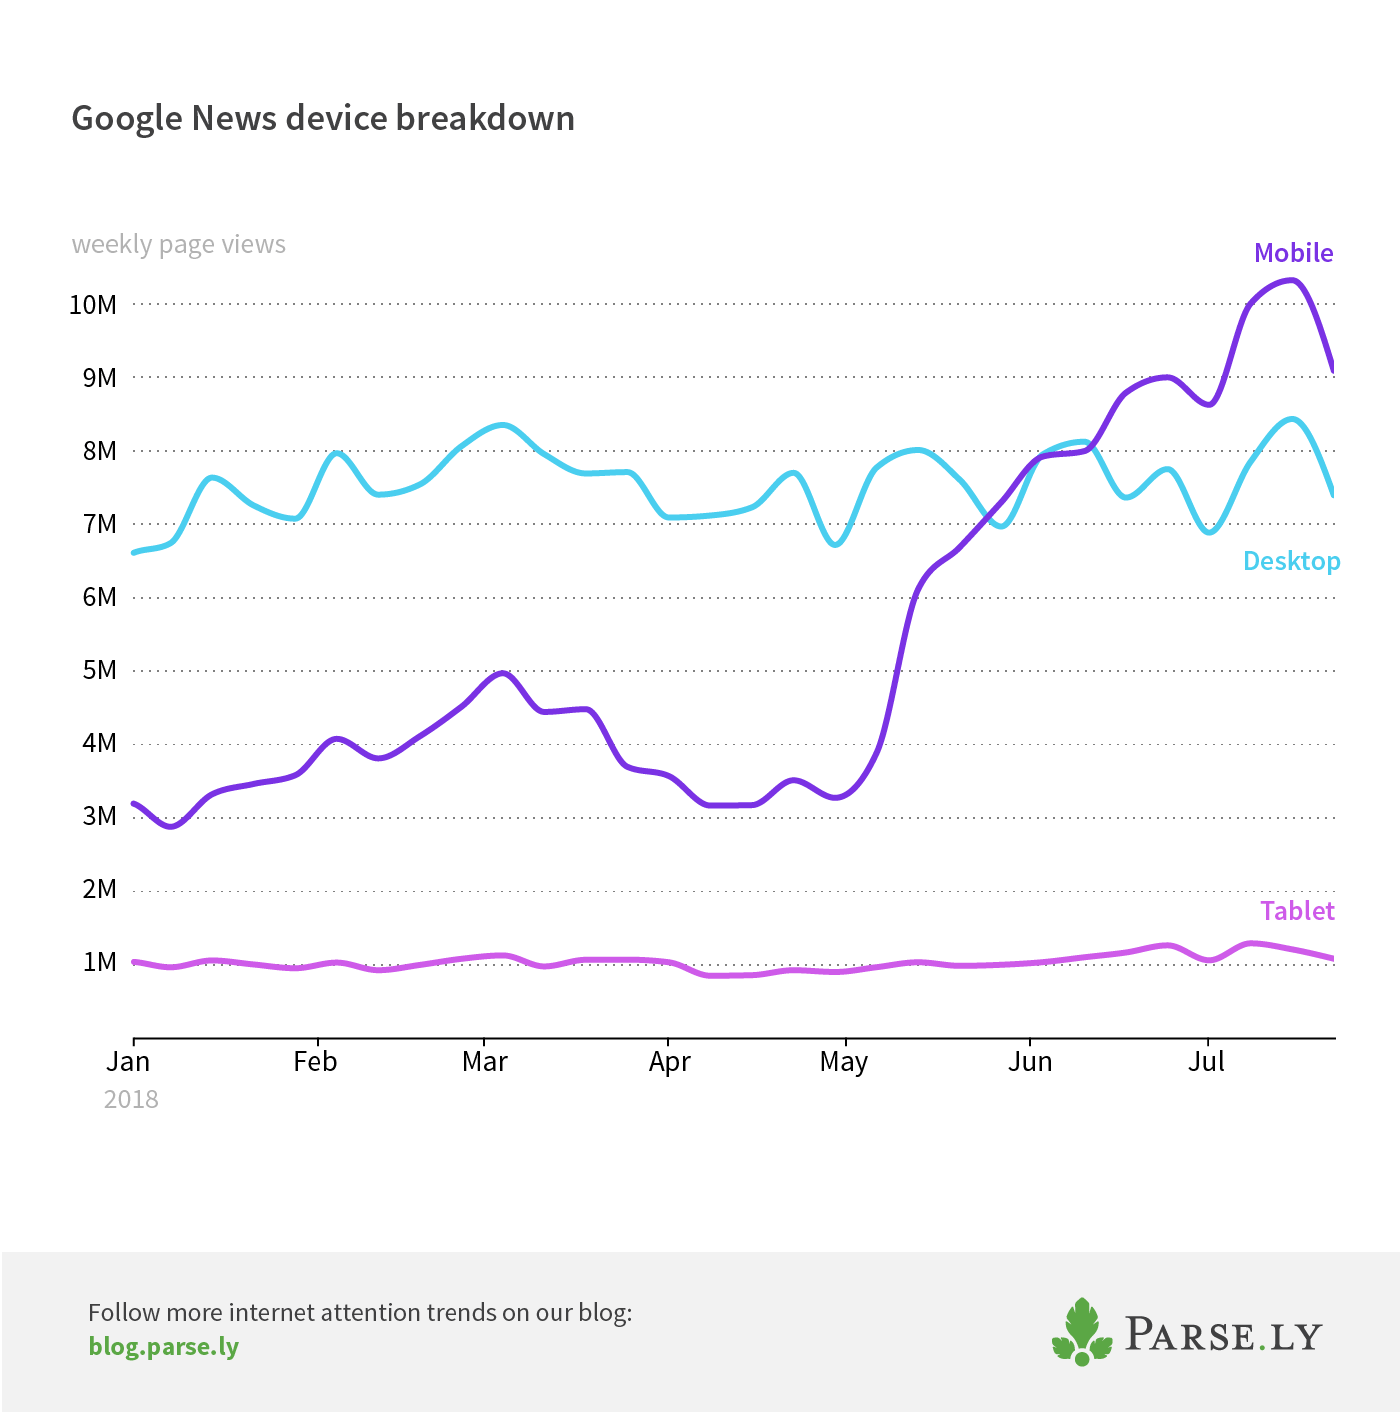 Google News device breakdown